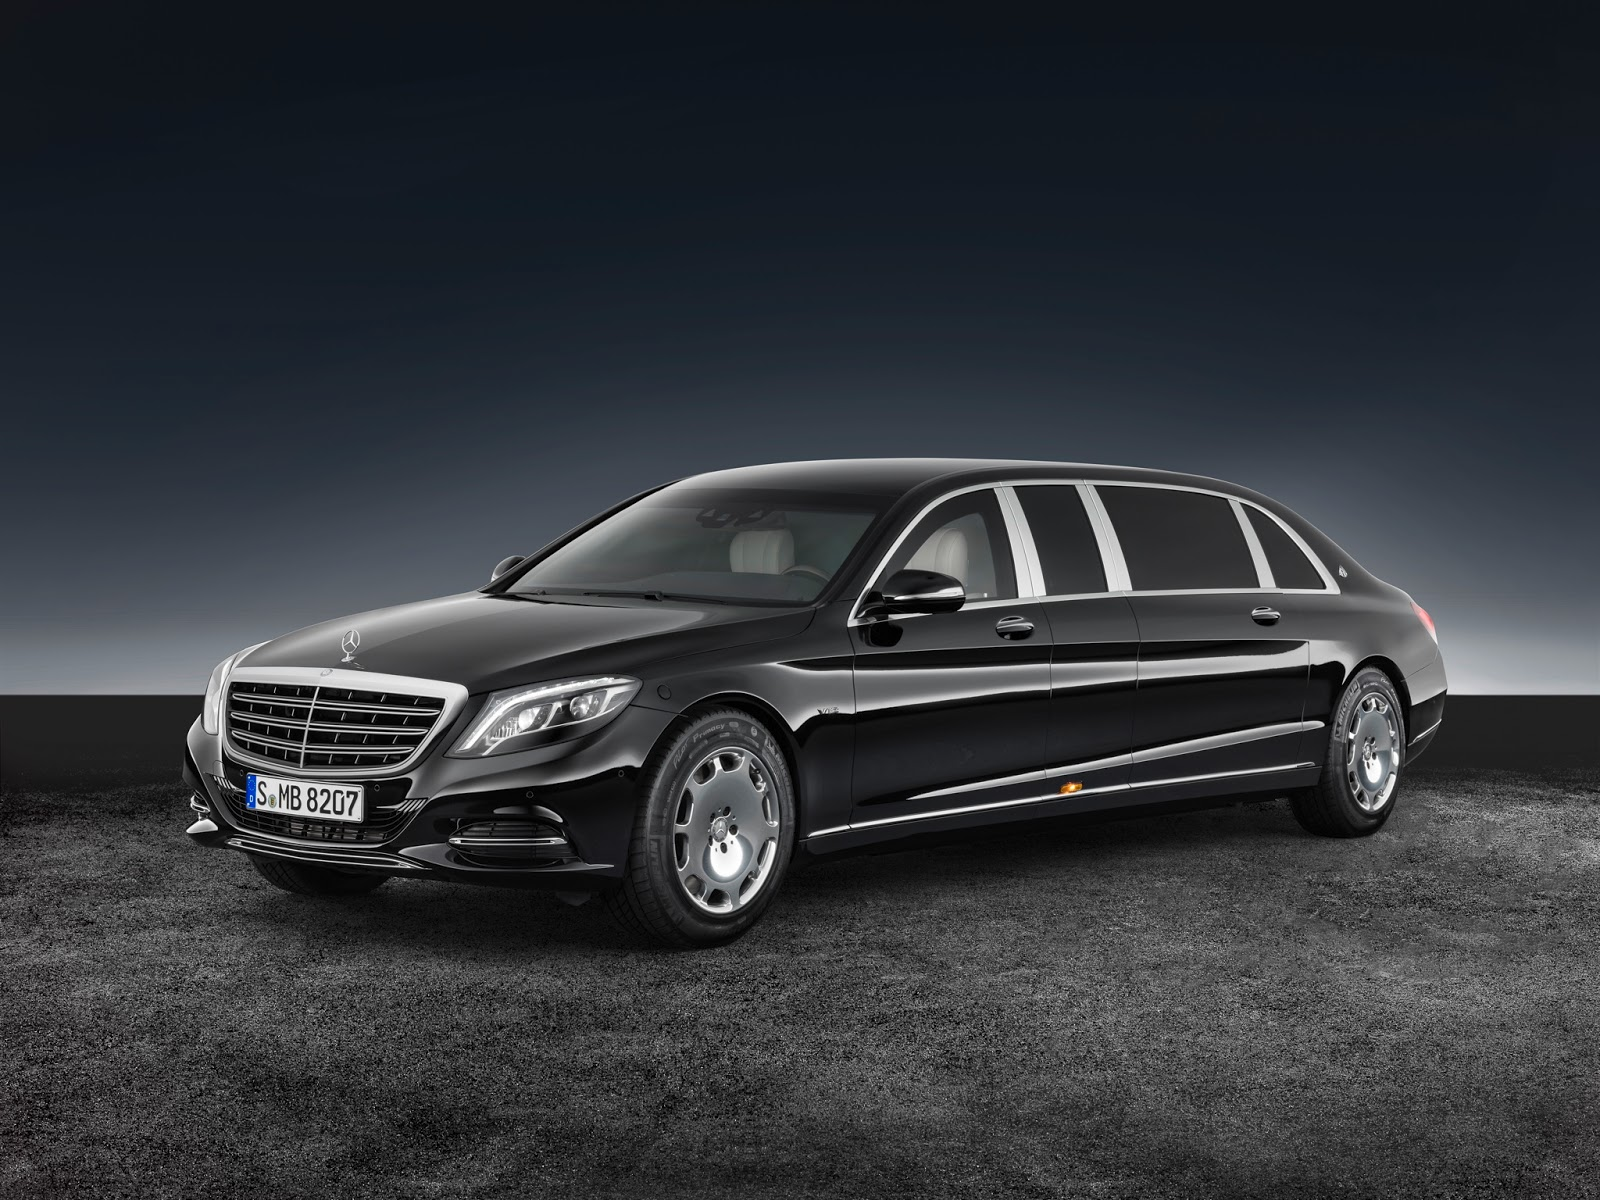 Scaldarsi motors maybach based 1 5 million emperor i is a sight to - Flagship Mercedes Maybach S600 Pullman Gets Armored Guard Variant